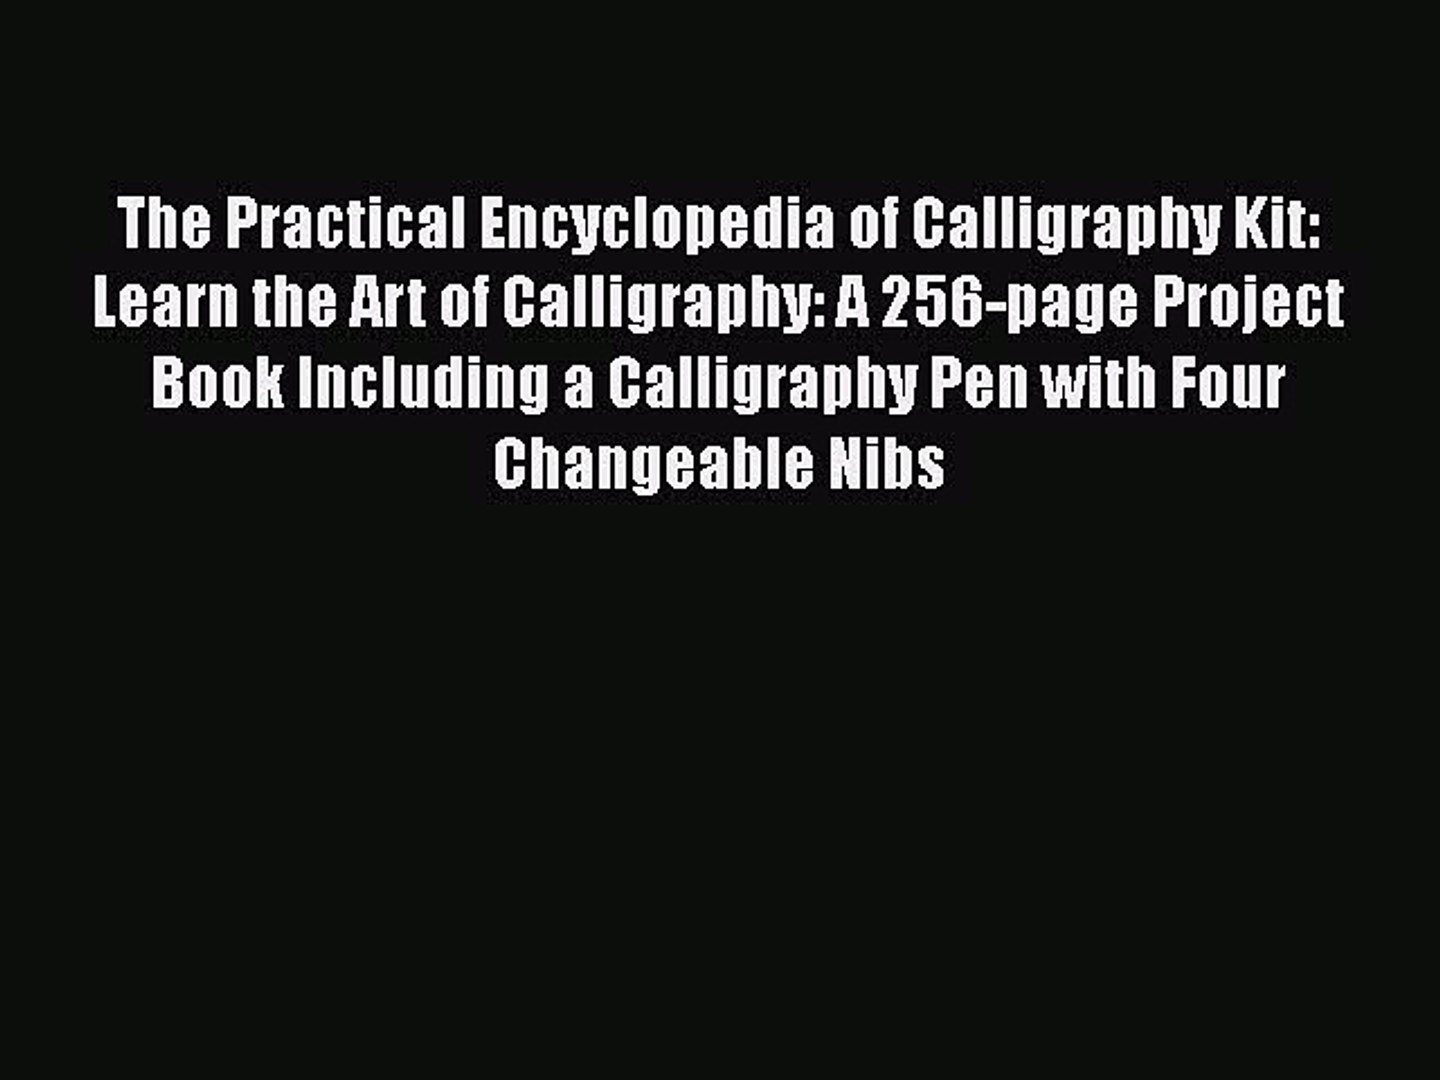 Read The Practical Encyclopedia of Calligraphy Kit: Learn the Art of Calligraphy: A 256-page